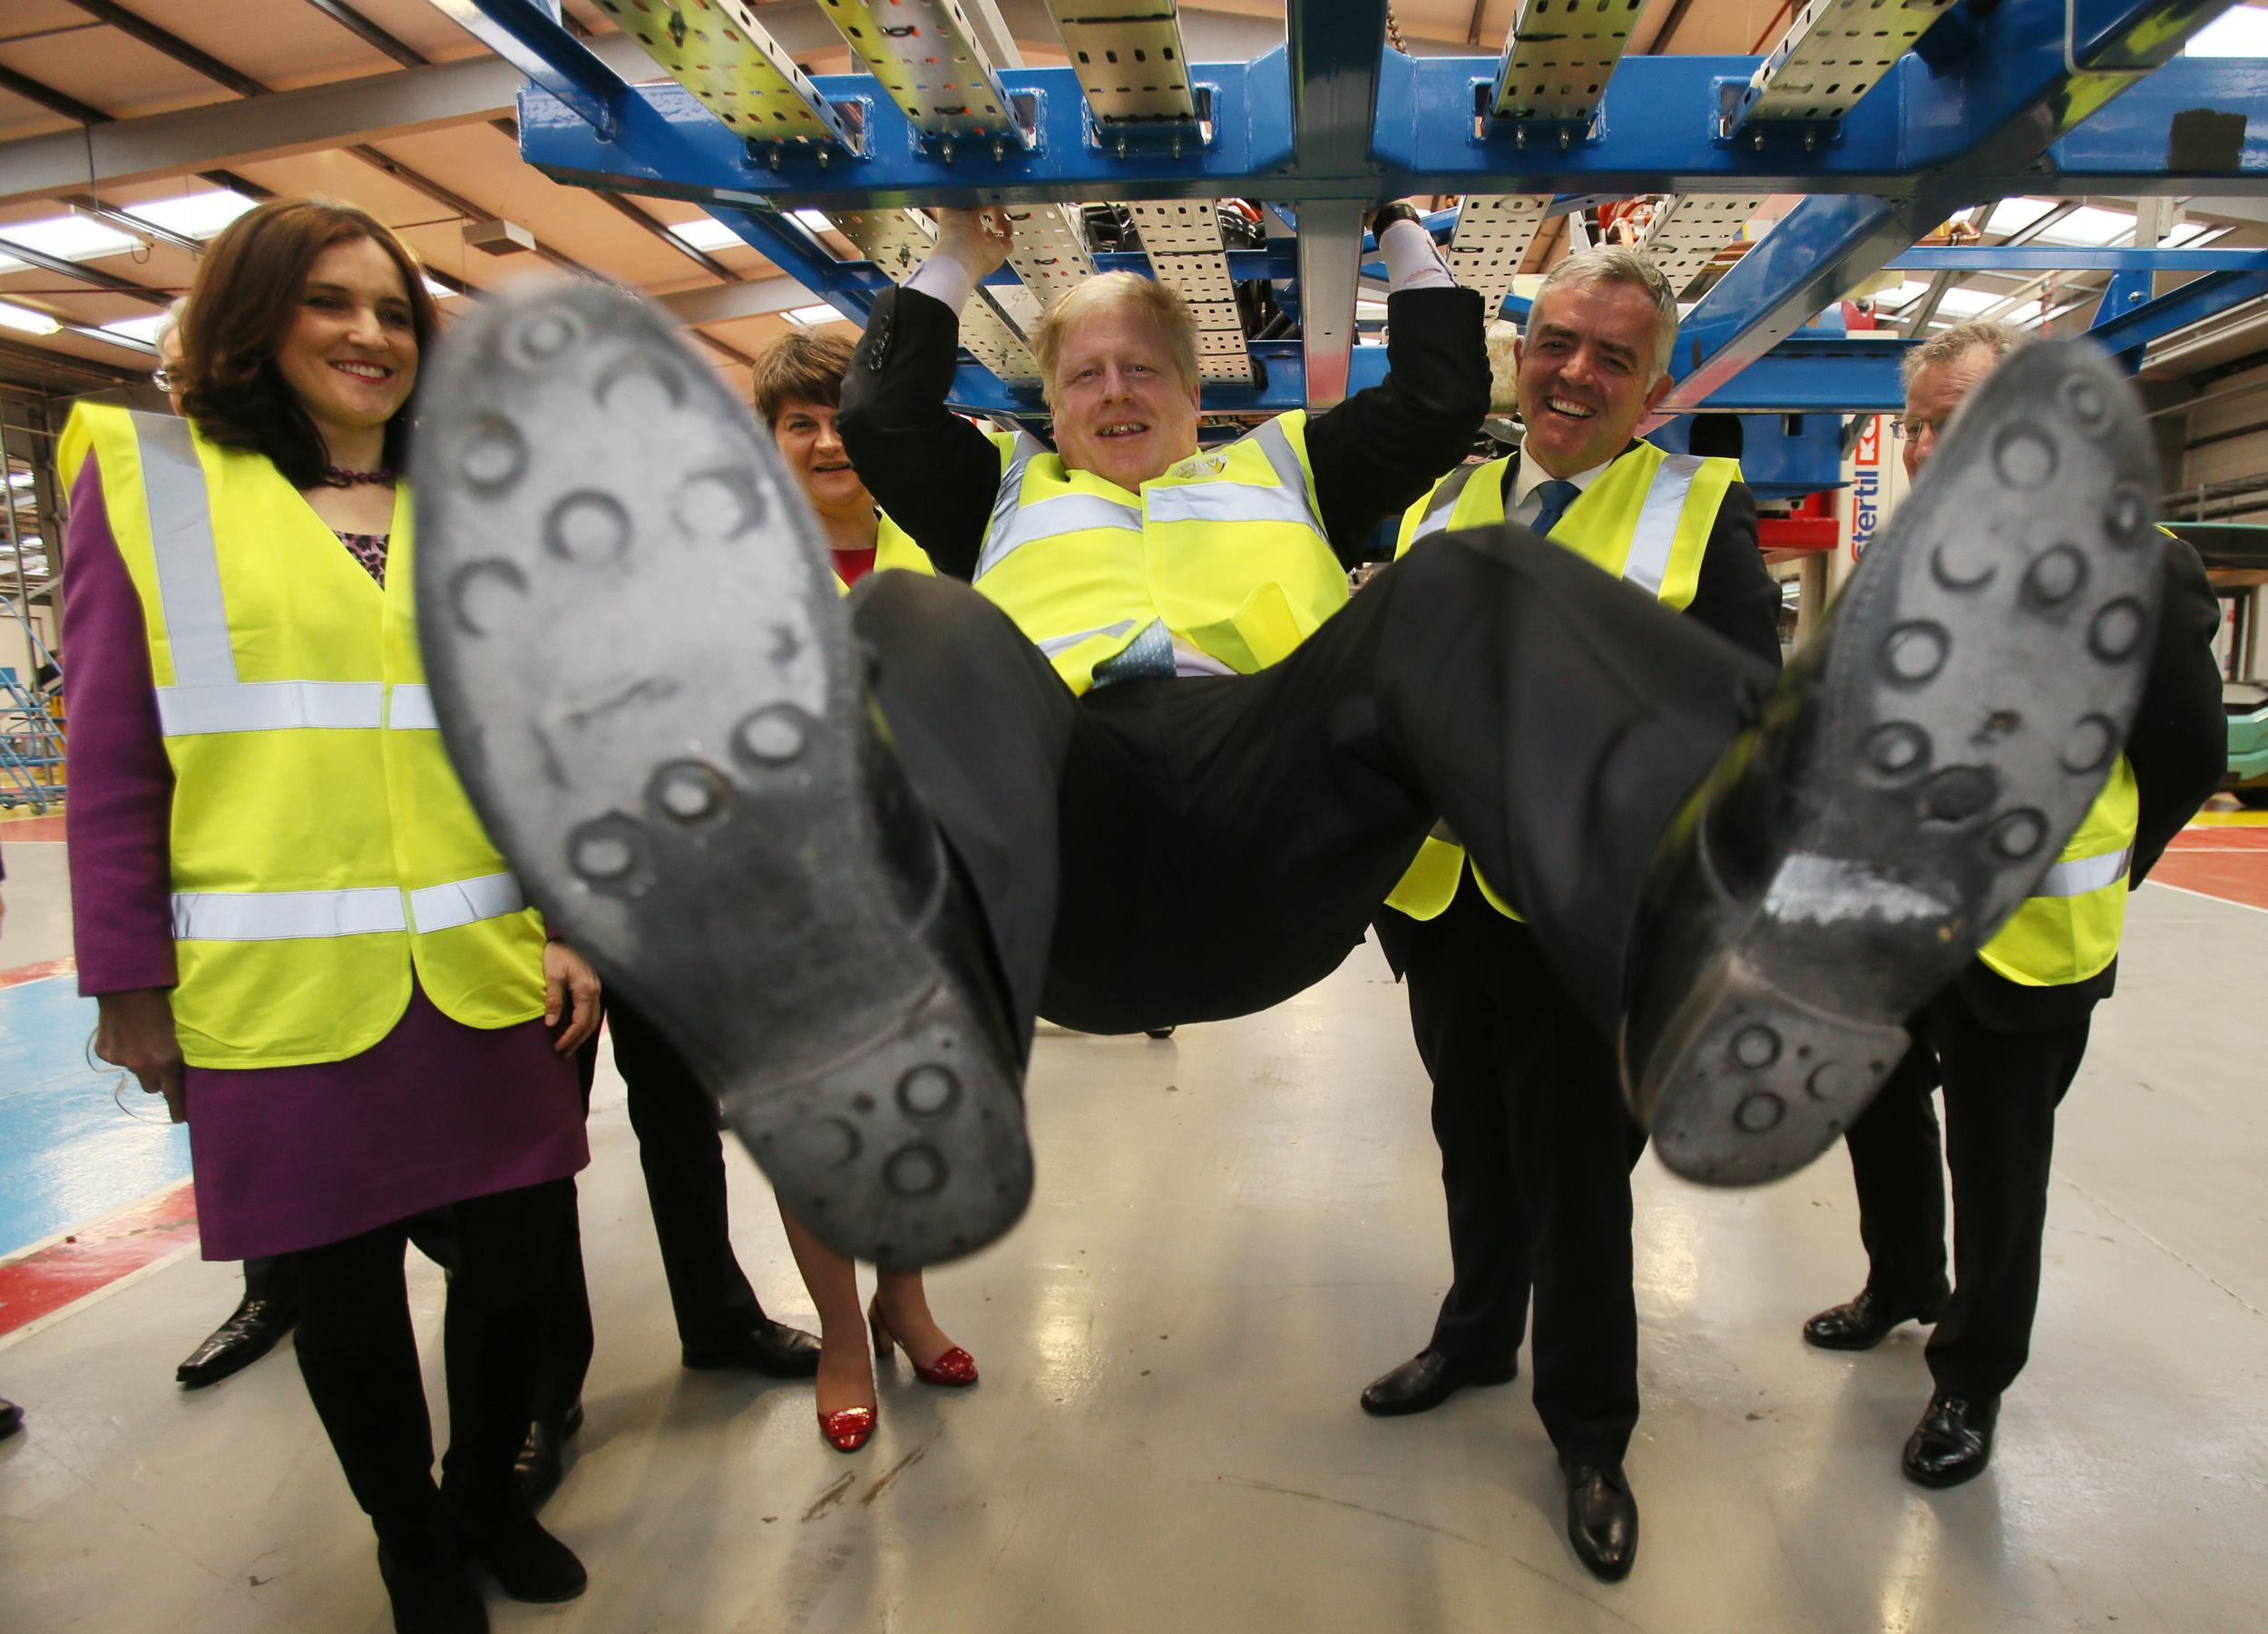 Mayor of London Boris Johnson (centre) swings from a bus as Northern Ireland Secretary Theresa Villiers (left), Northern First Minister and DUP leader Arlene Foster and Minister of Enterprise, Trade and Investment Jonathan Bell (second right) look on during a visit to Wrightbus Chassis plant in Antrim.